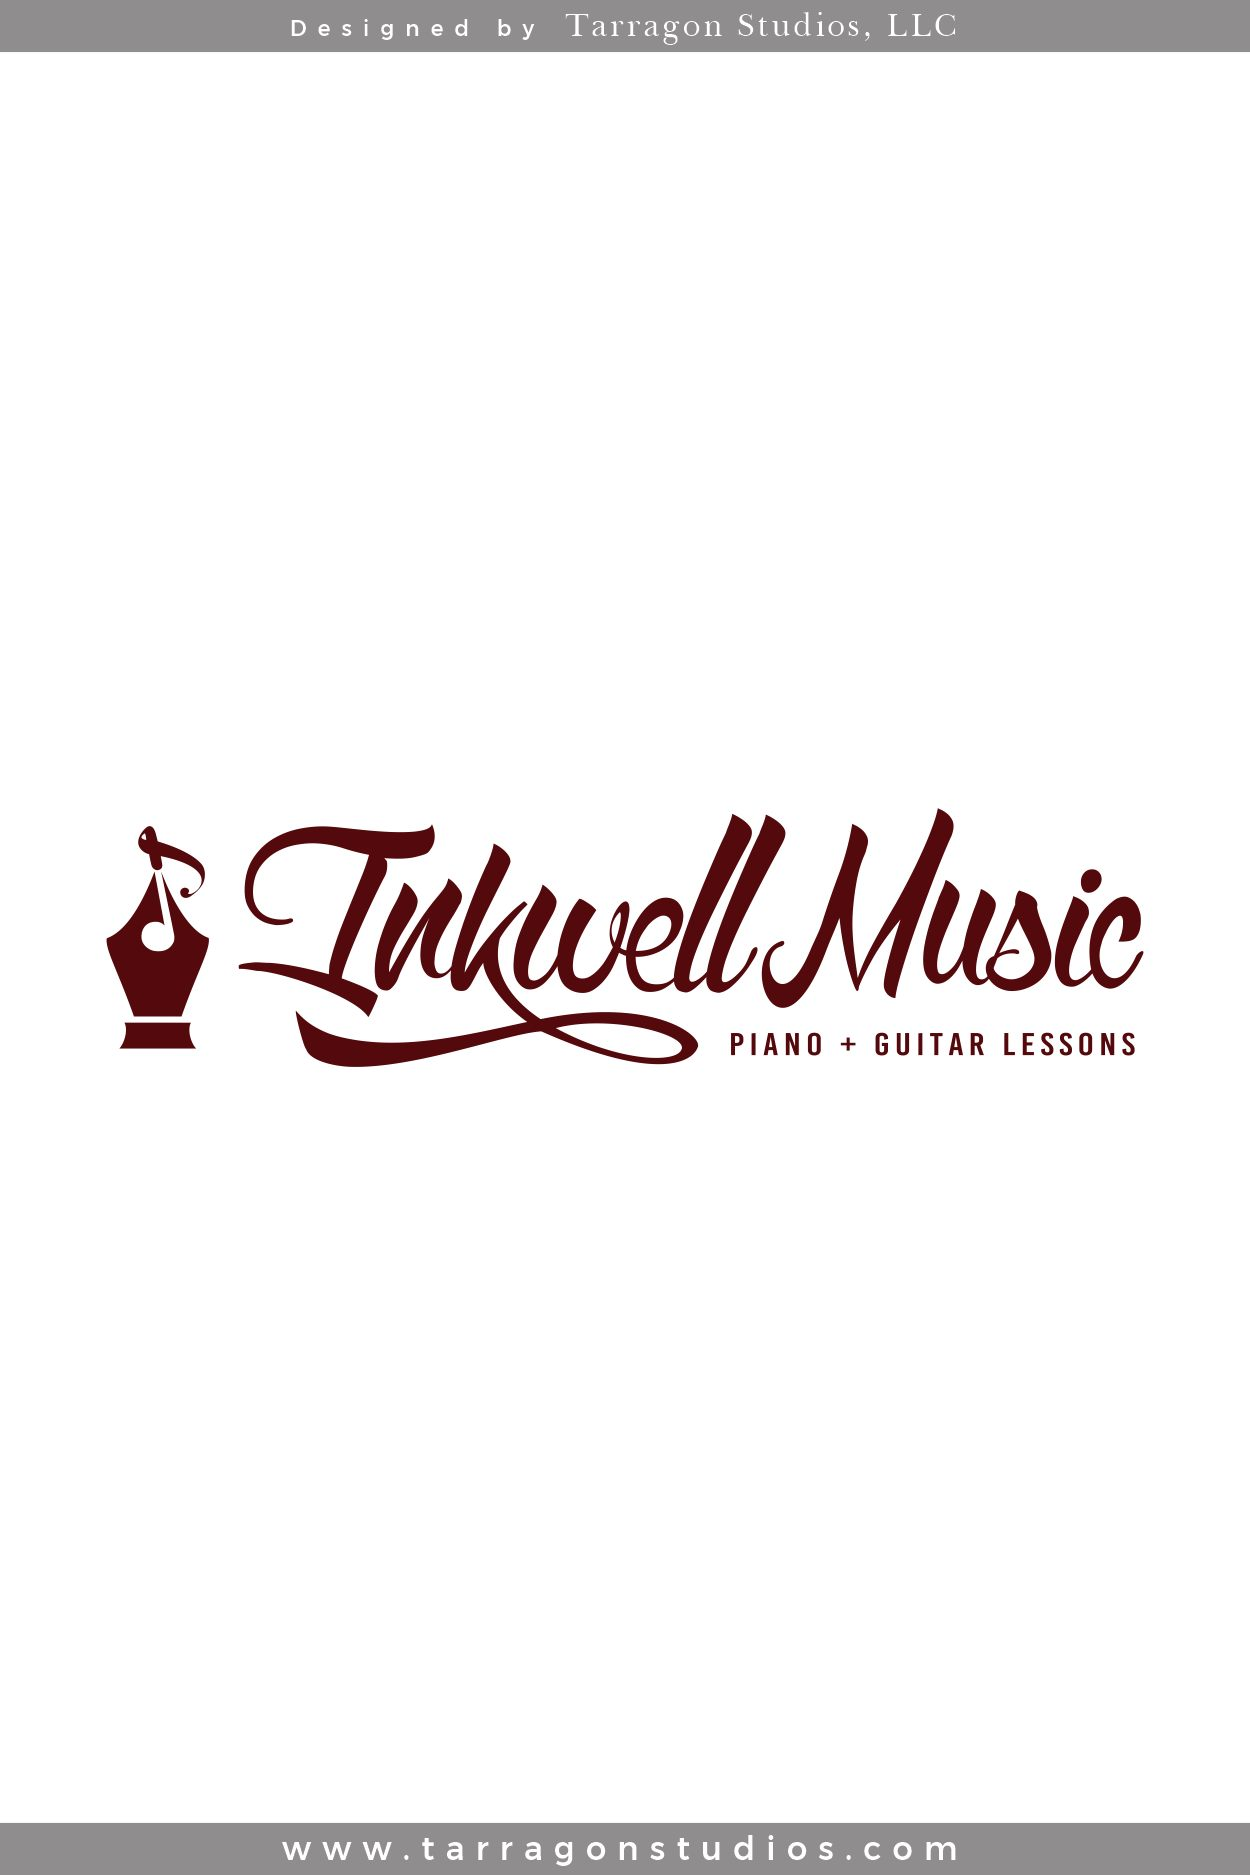 Logo & Brand Design for Inkwell Music by Tarragon Studios. Keep Reading to see all of their warm, vintage logo variations! #logo #branding #design #vintage #warm #music